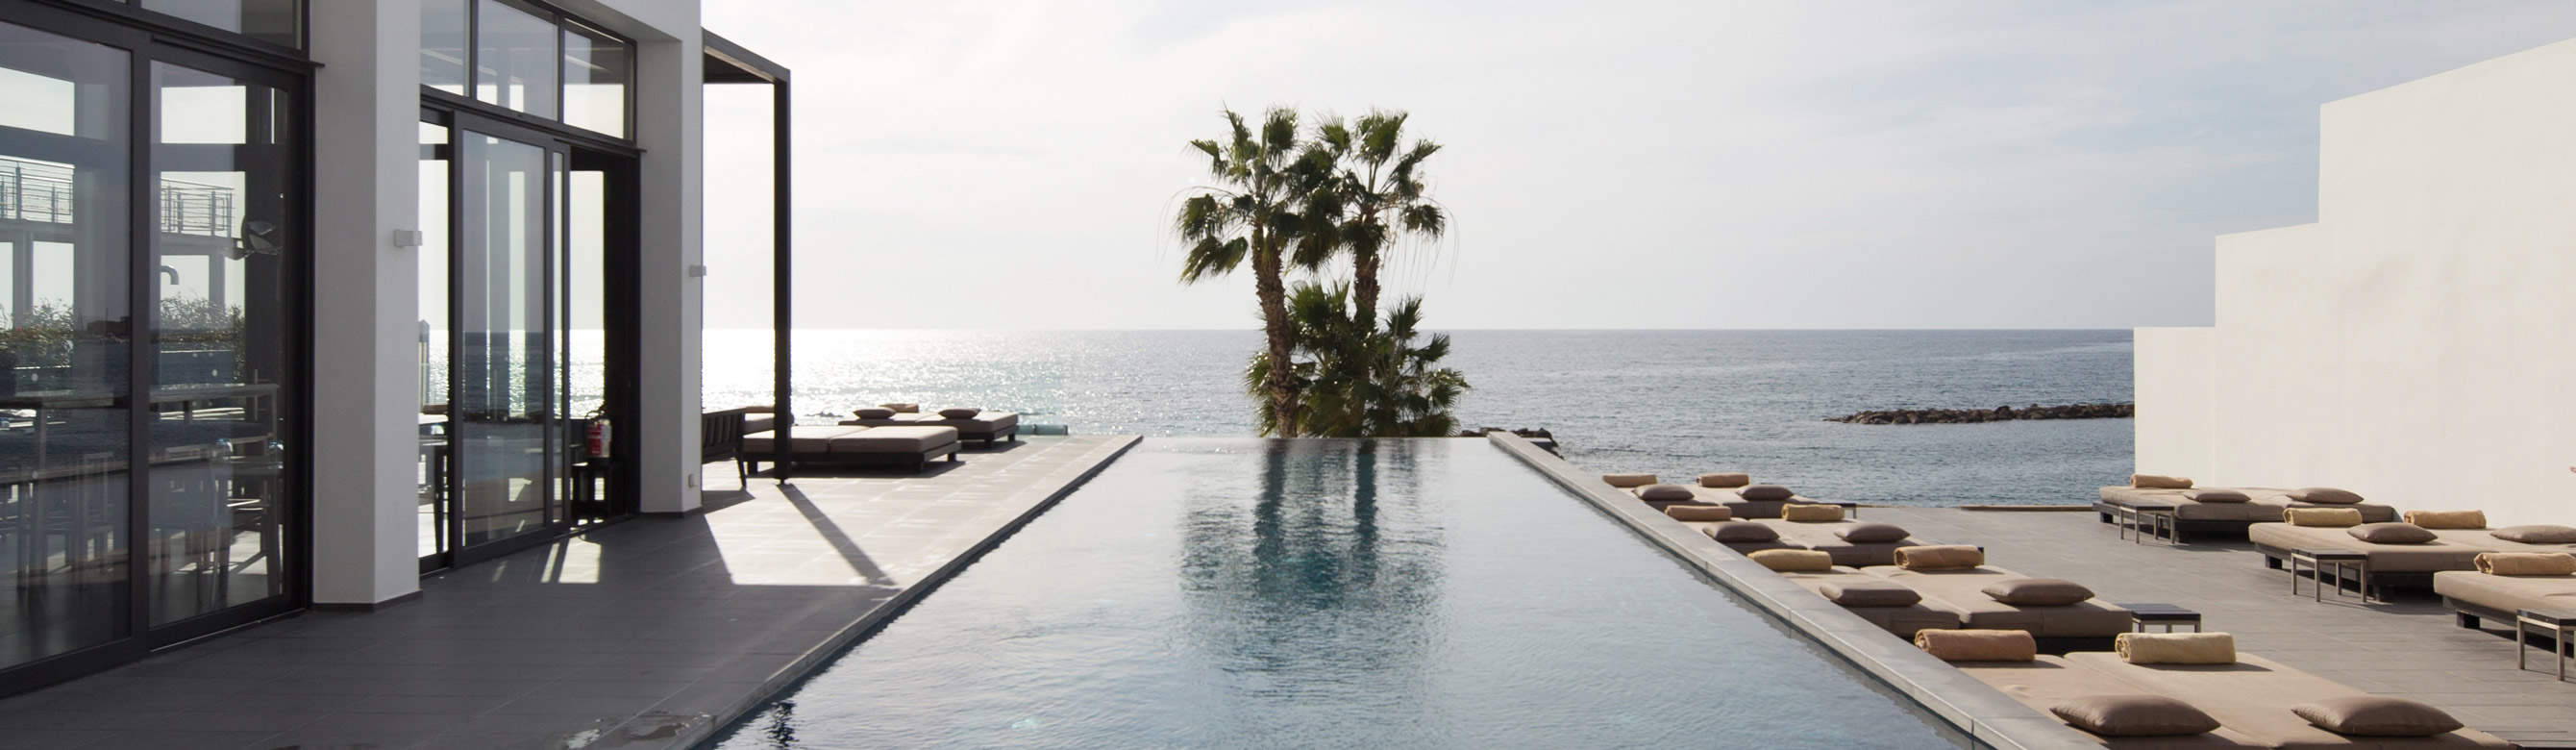 almyraspa0outdoor_pool_sea_view.jpg